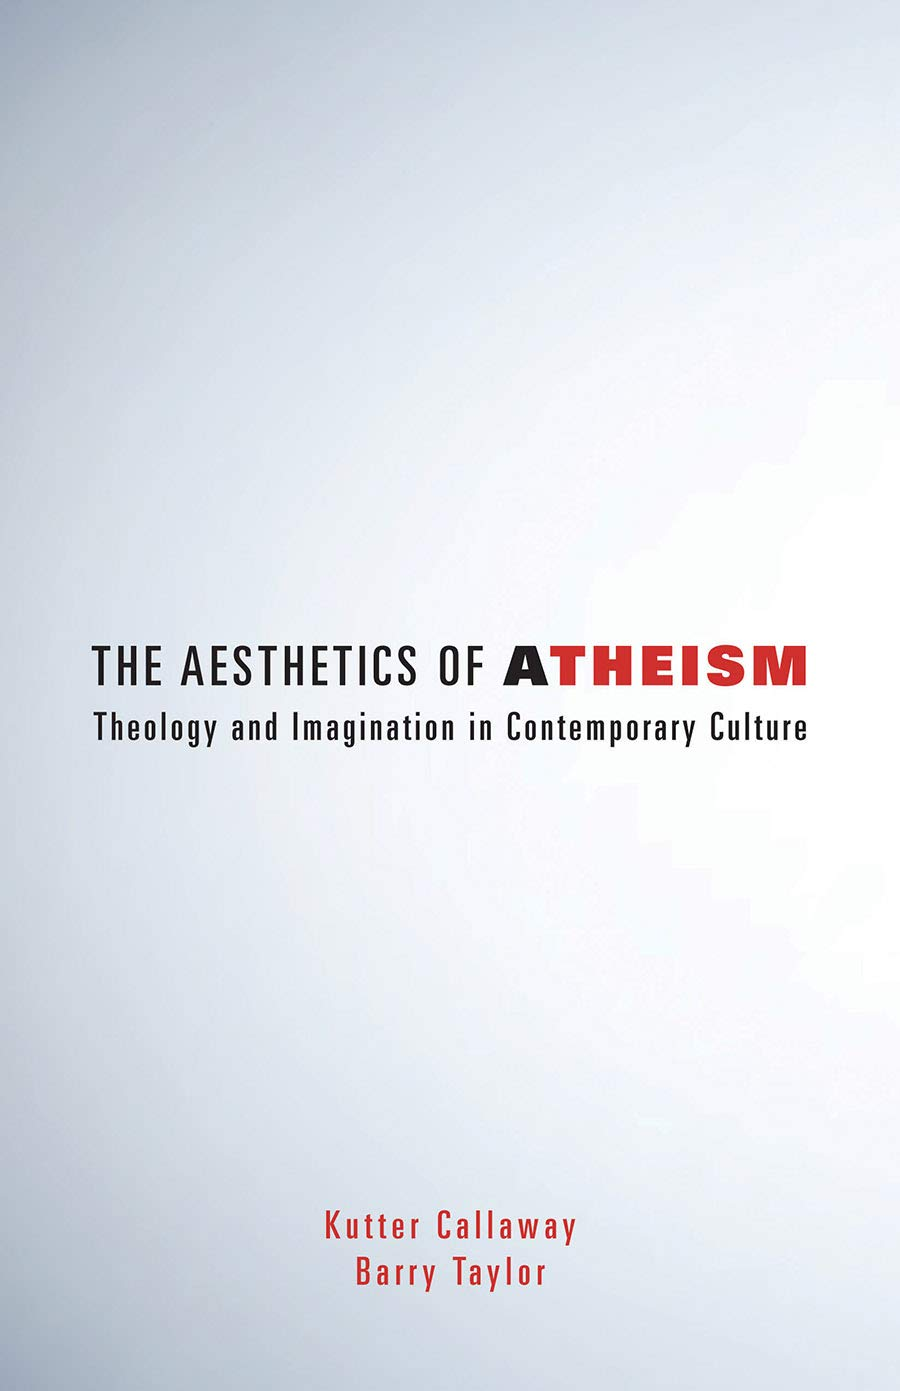 The Aesthetics of Atheism: Theology and Imagination in Contemporary Culture - To really understand God, you have to understand atheism.Atheism and Christianity are often placed at polar opposite ends of a spectrum, forever in stark conflict with each other. In The Aesthetics of Atheism, Kutter Callaway and Barry Taylor propose a radical alternative: atheism and theism need each other. In fact, atheism offers profound and necessary theological insights into the heart of Christianity itself. To get at these truths, Callaway and Taylor dive into the aesthetic dimensions of atheism, using everything from Stranger Things to Damien Hirst's controversial sculptures to the music of David Bowie, Nick Cave, and Leonard Cohen. This journey through contemporary culture and its imagination offers readers a deeper understanding of theology, culture, and how to engage faith in a chaotic and complex world where God is present in the most unexpected place: atheism.